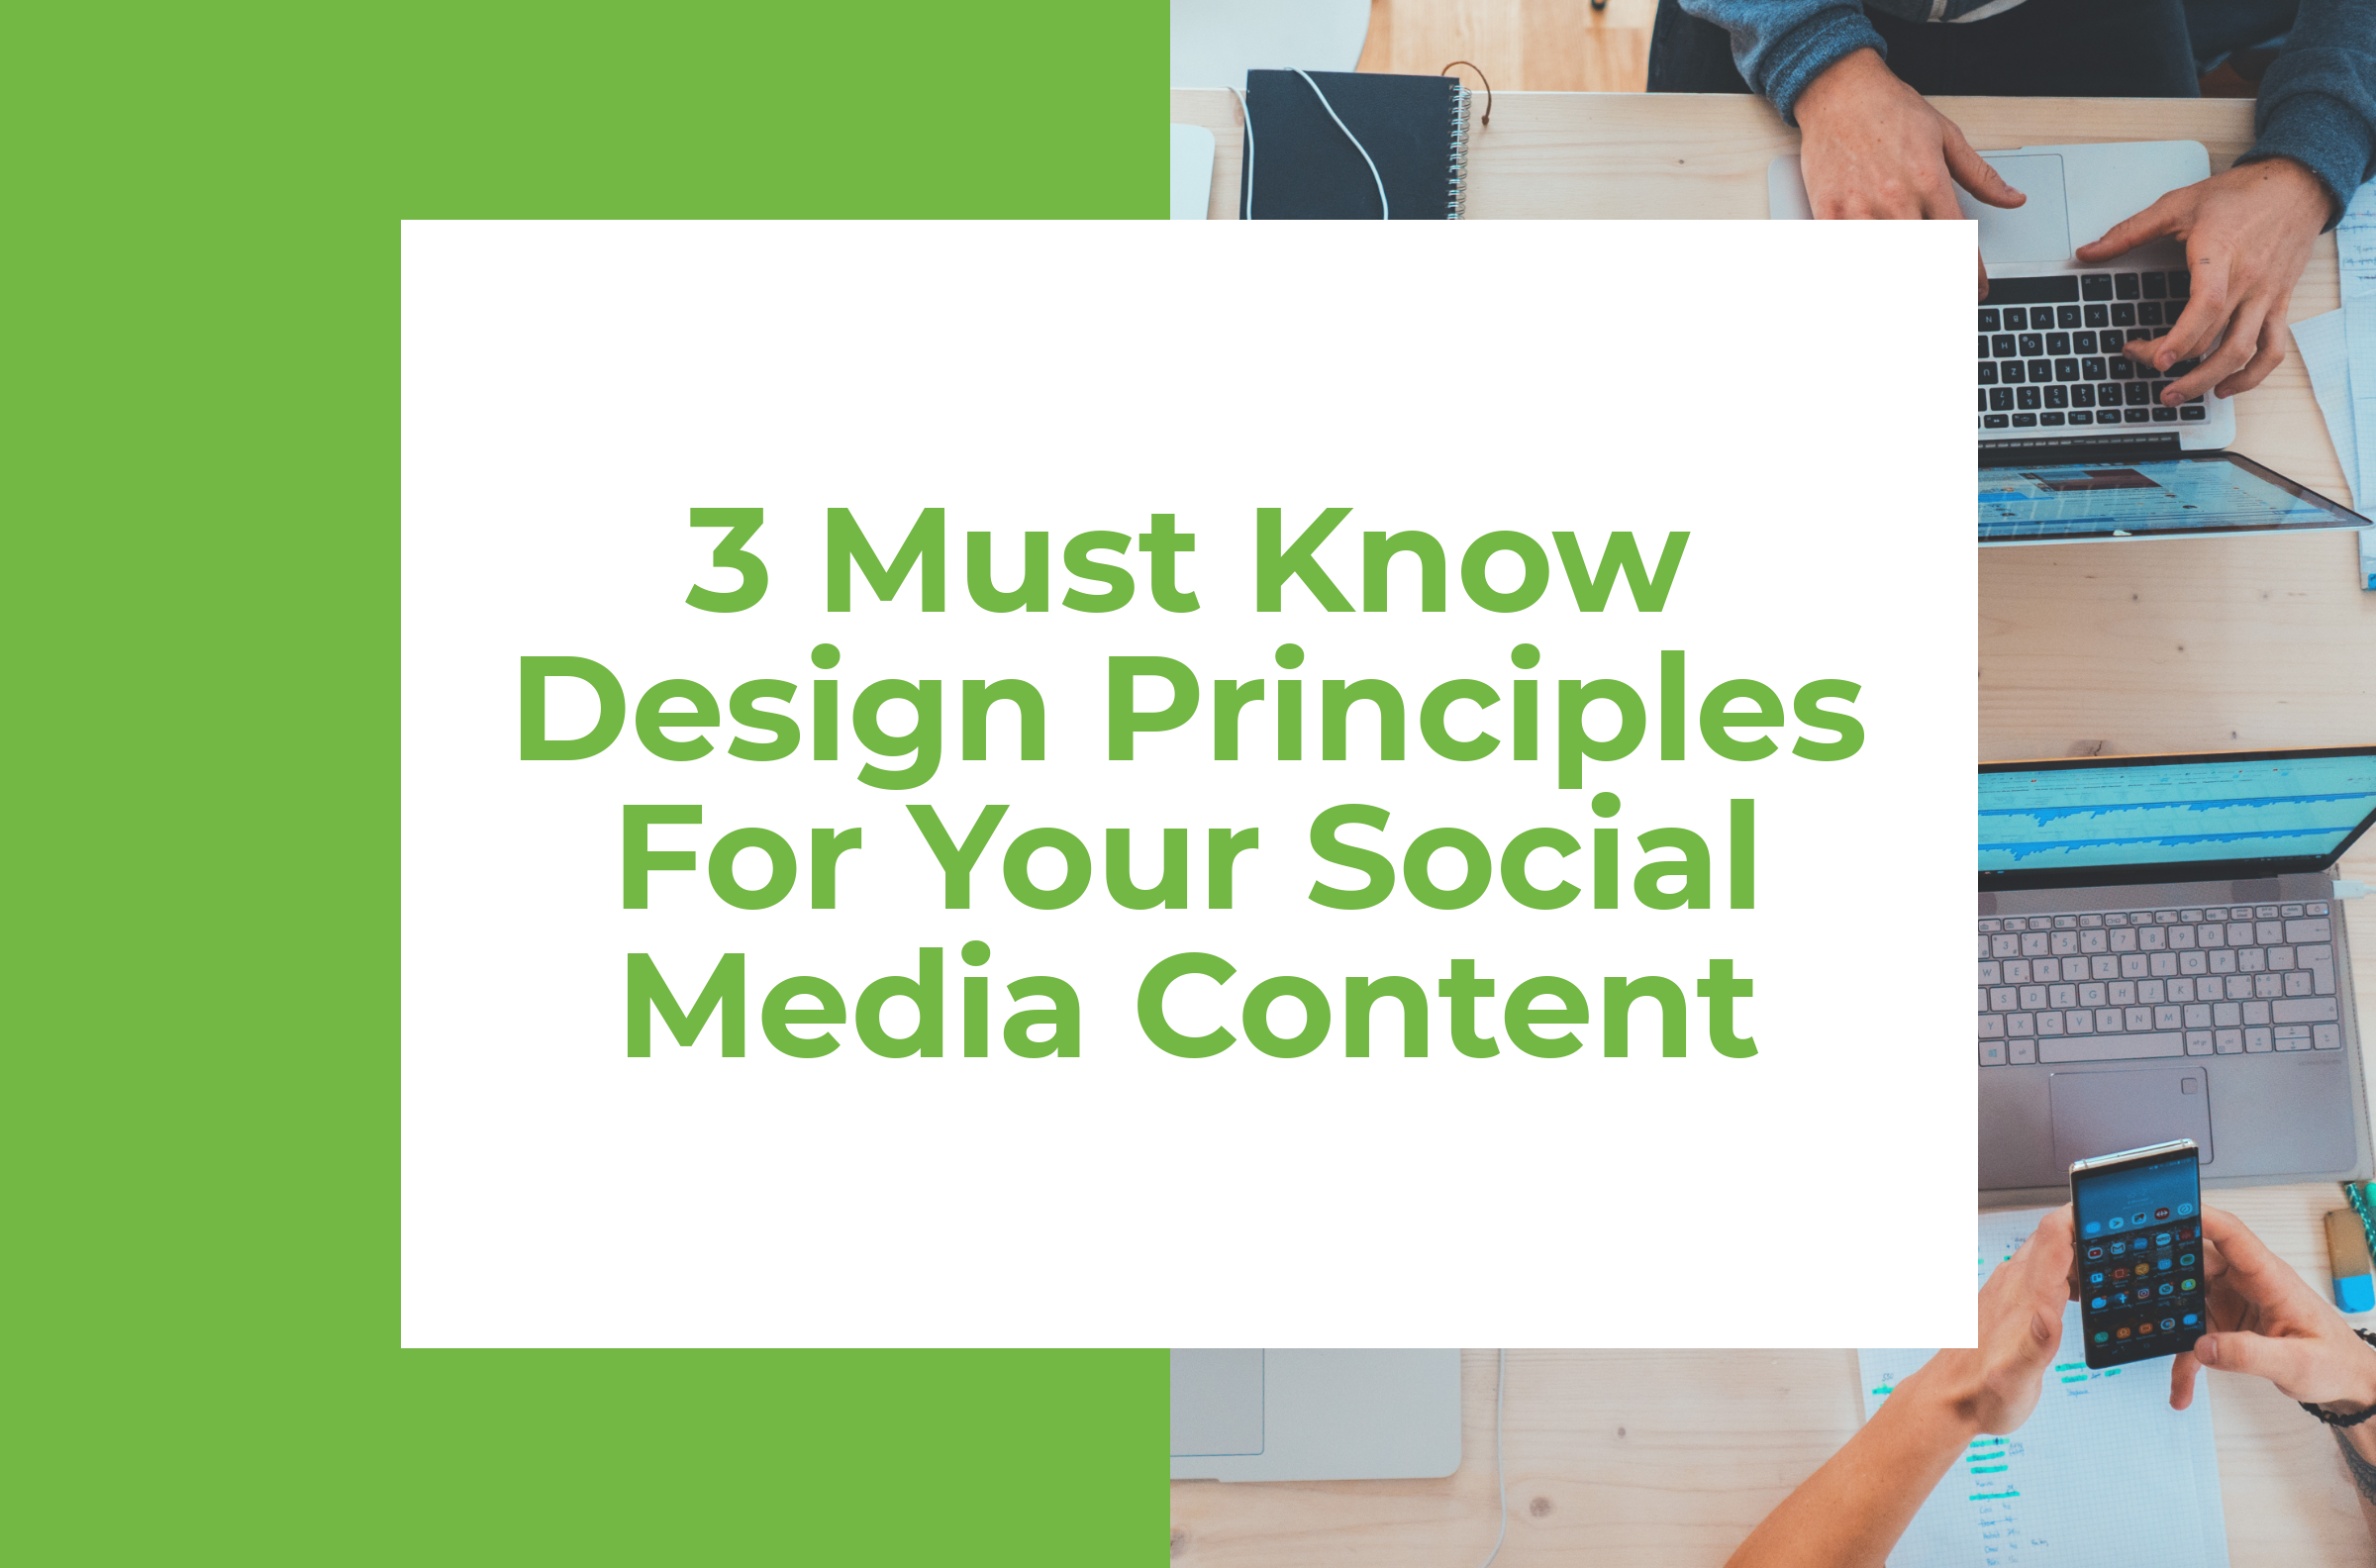 3 Must Know Design Principles For Your Social Media Content 180 Degrees Consulting